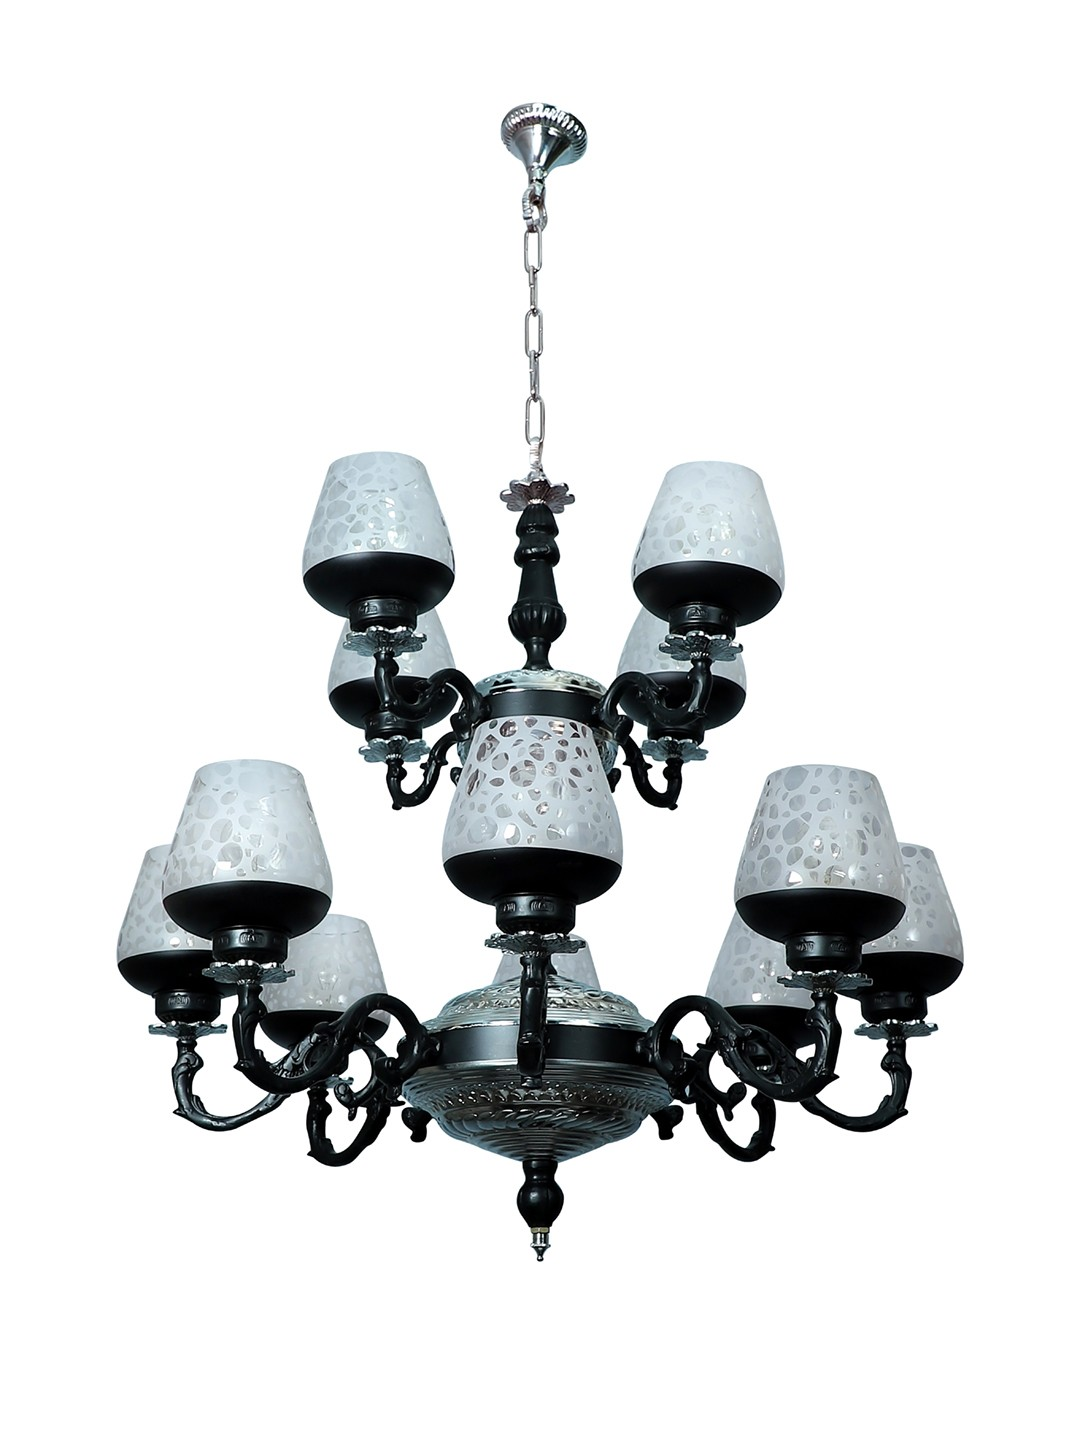 Black & Silver Gothic 12 Light  2 Tier Aluminium Chandelier